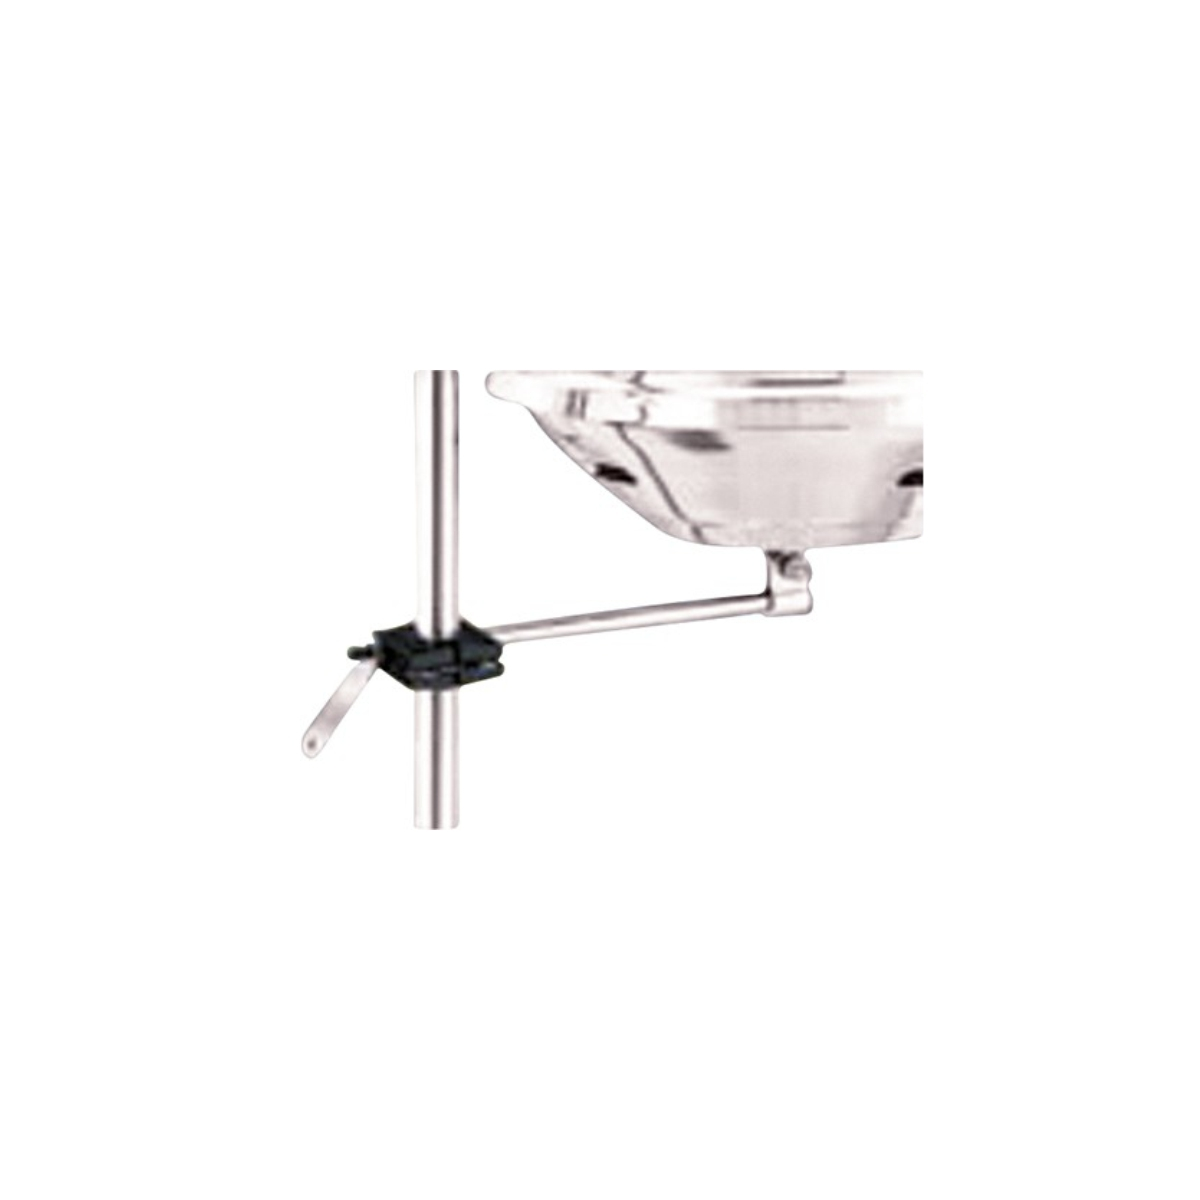 BARBECUE MOUNTING